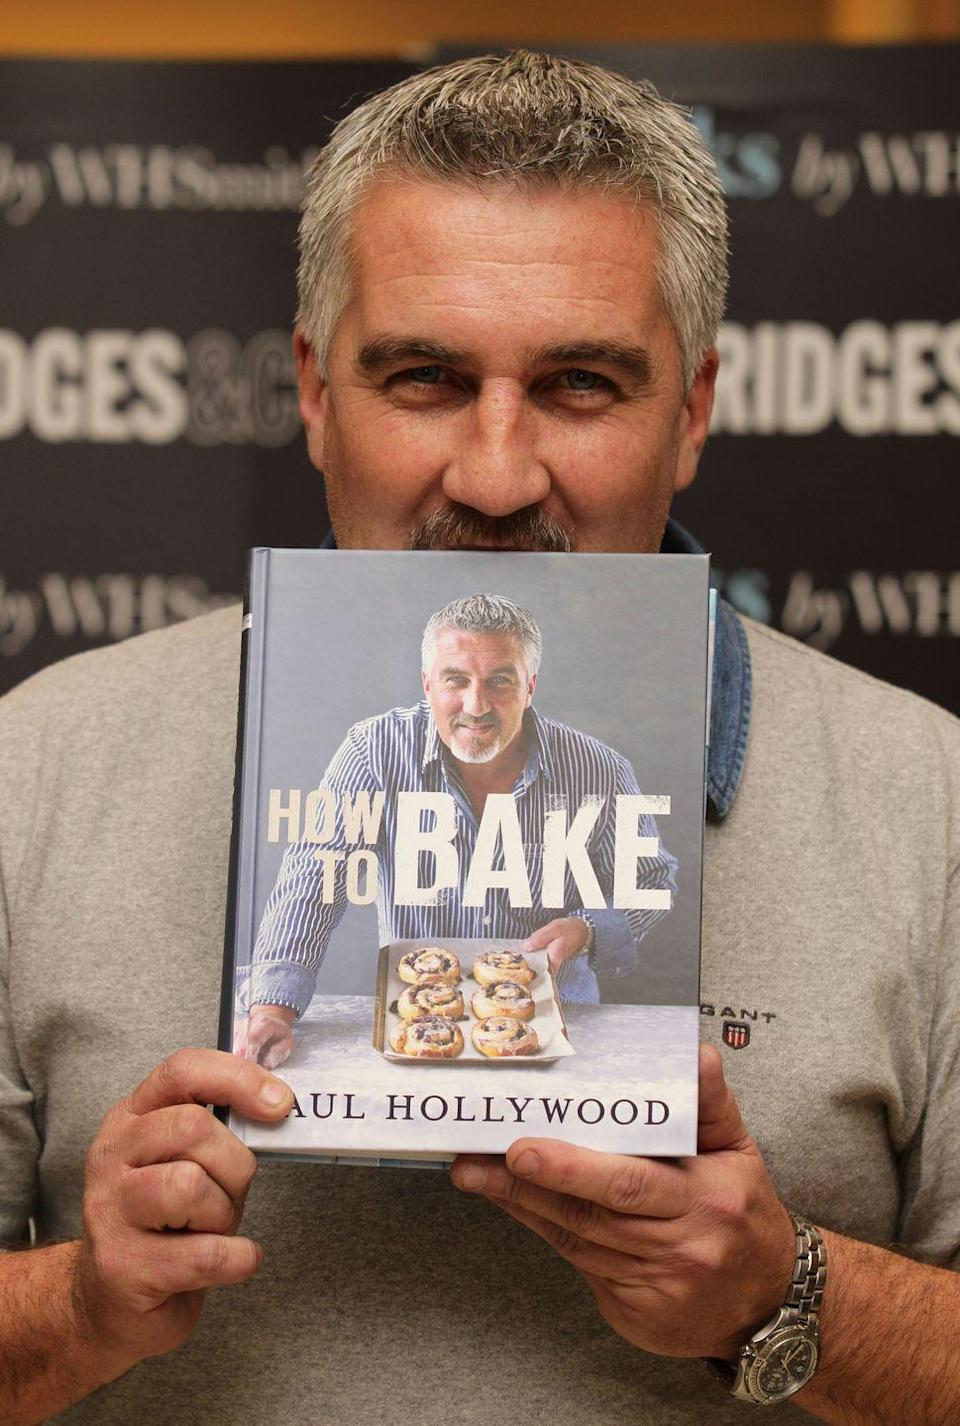 """<p>This dude took some time after his initial wild British success to go to Cyprus, Egypt, and Jordan to study the techniques and sciences behind ancient methods of baking bread. </p><p>Oh, and he's written seven <a href=""""http://paulhollywood.com/books-2/"""" rel=""""nofollow noopener"""" target=""""_blank"""" data-ylk=""""slk:books"""" class=""""link rapid-noclick-resp"""">books</a> on all his expertise. </p><p><a class=""""link rapid-noclick-resp"""" href=""""https://www.amazon.com/How-Bake-Paul-Hollywood/dp/140881949X?tag=syn-yahoo-20&ascsubtag=%5Bartid%7C1782.g.21989828%5Bsrc%7Cyahoo-us"""" rel=""""nofollow noopener"""" target=""""_blank"""" data-ylk=""""slk:BUY NOW"""">BUY NOW</a> <strong><em>How To Bake, $32; amazon.com</em></strong><br></p>"""